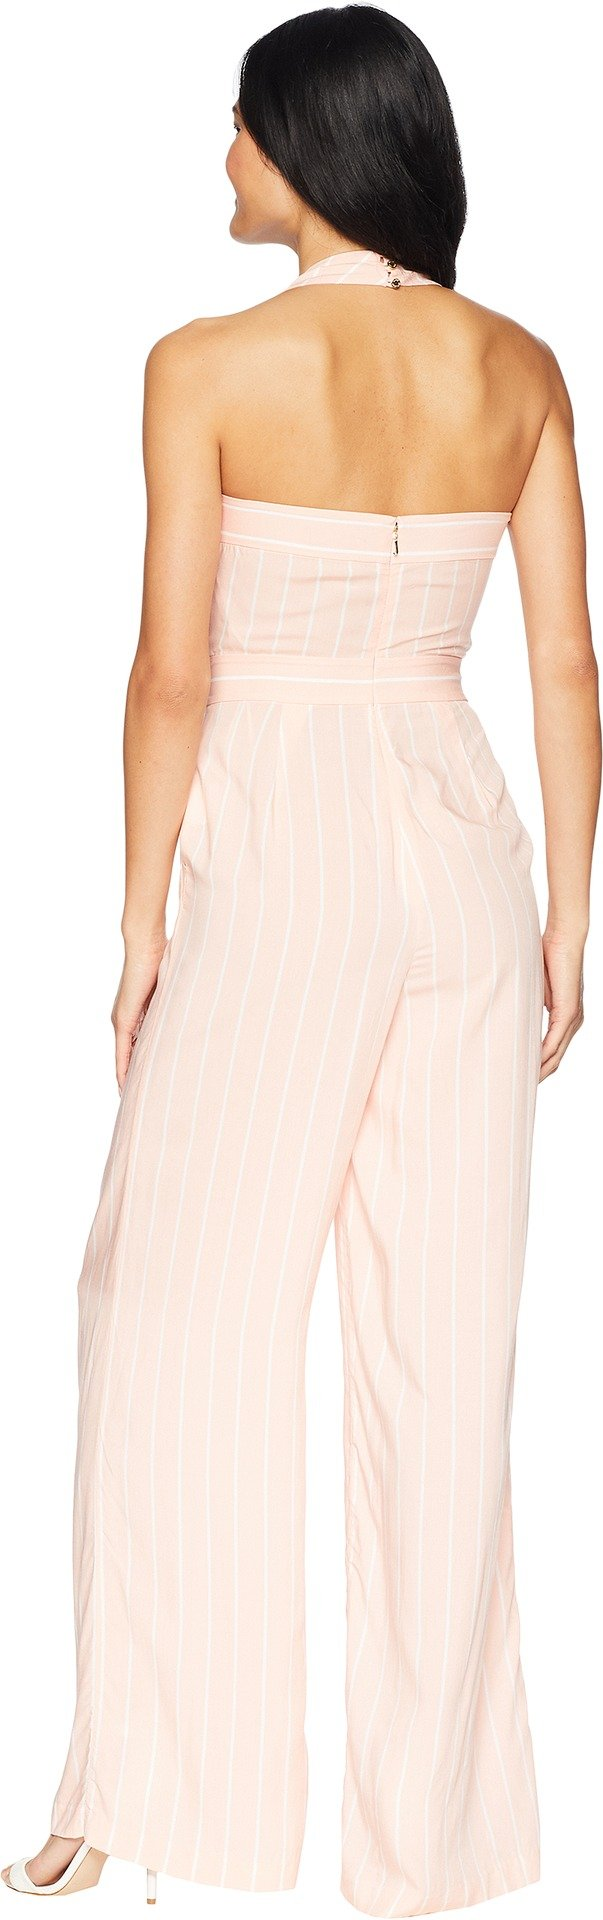 Juicy Couture Women's Cindy Stripe Jumpsuit Soft Pink Cindy Stripe 6 by Juicy Couture (Image #3)